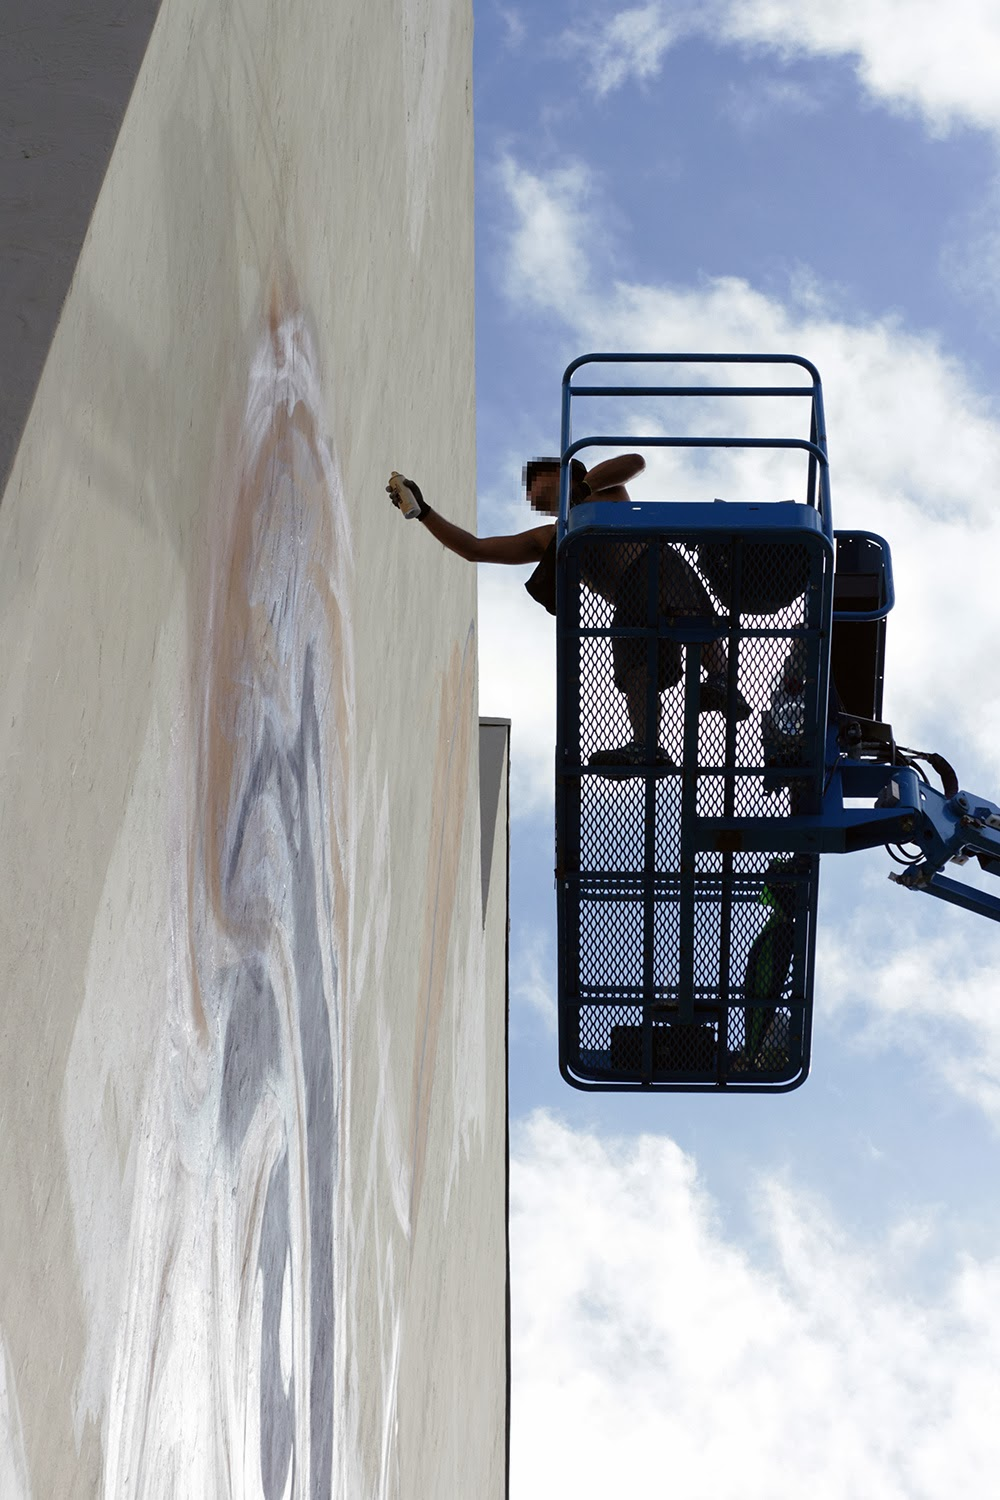 ino-in-heaven-with-you-new-mural-in-wynwood-miami-02